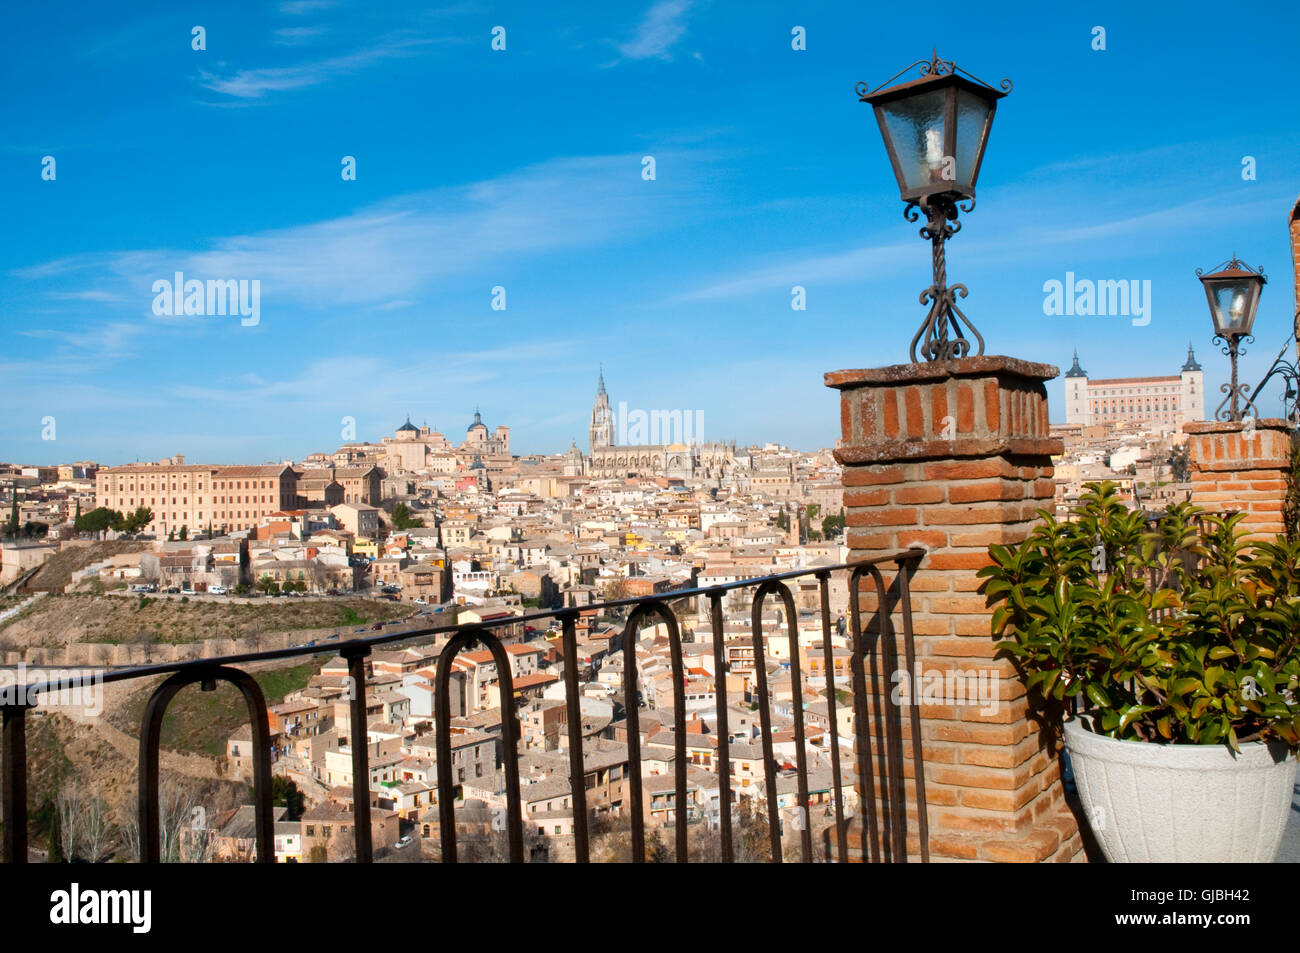 Overview from viewpoint. Toledo, Spain. - Stock Image